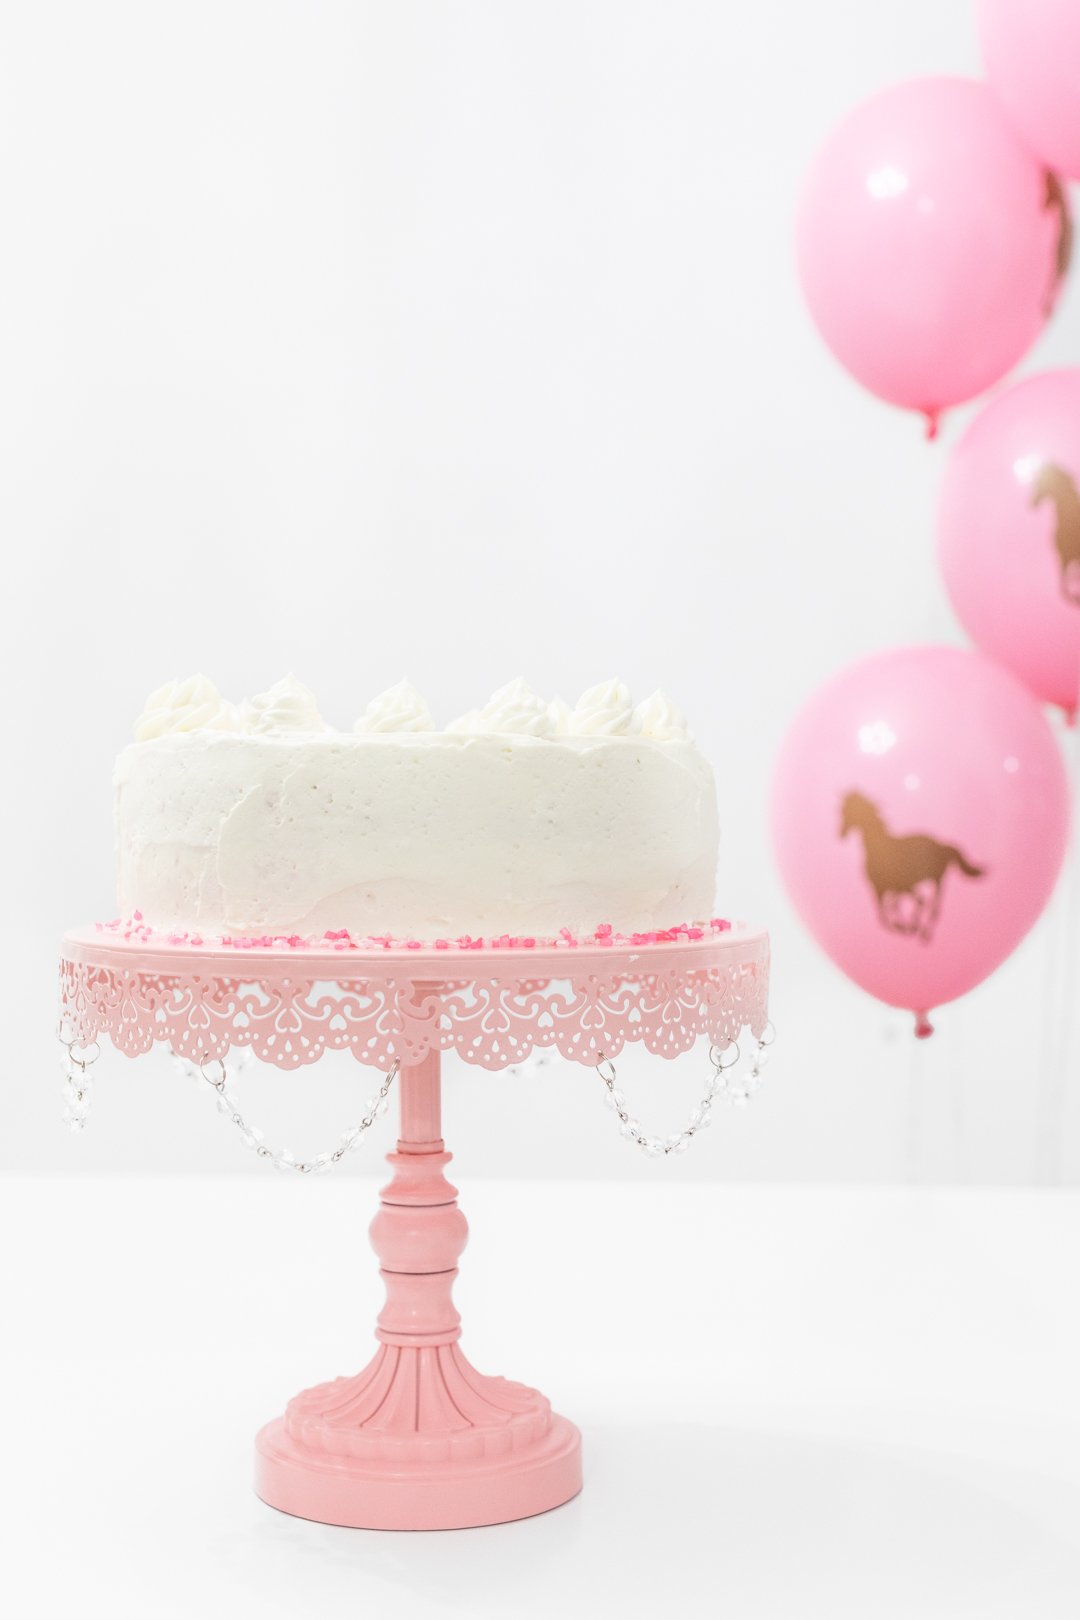 White cake on pretty pink cake stand. Horse balloons.